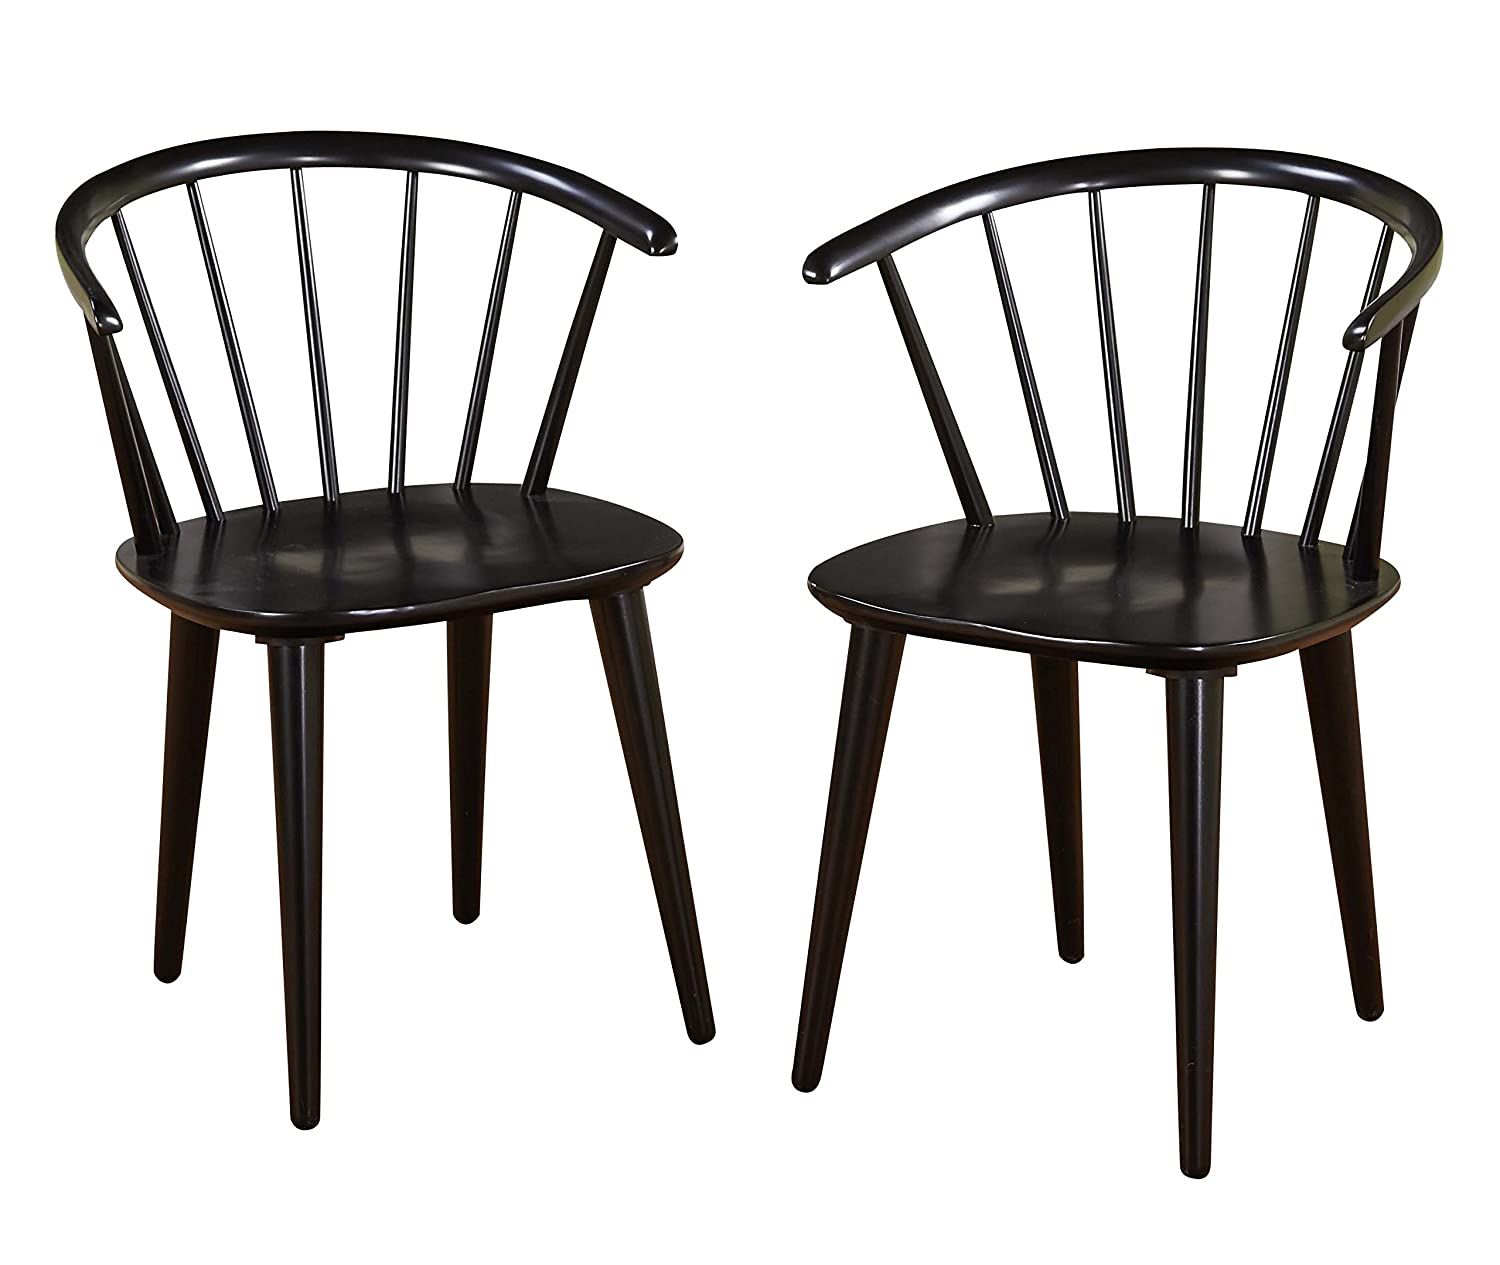 Amazon.com - Target Marketing Systems Set of 2 Florence Dining Chairs with Low Windsor Spindle Back Set of 2 Black - Chairs  sc 1 st  Amazon.com & Amazon.com - Target Marketing Systems Set of 2 Florence Dining ...